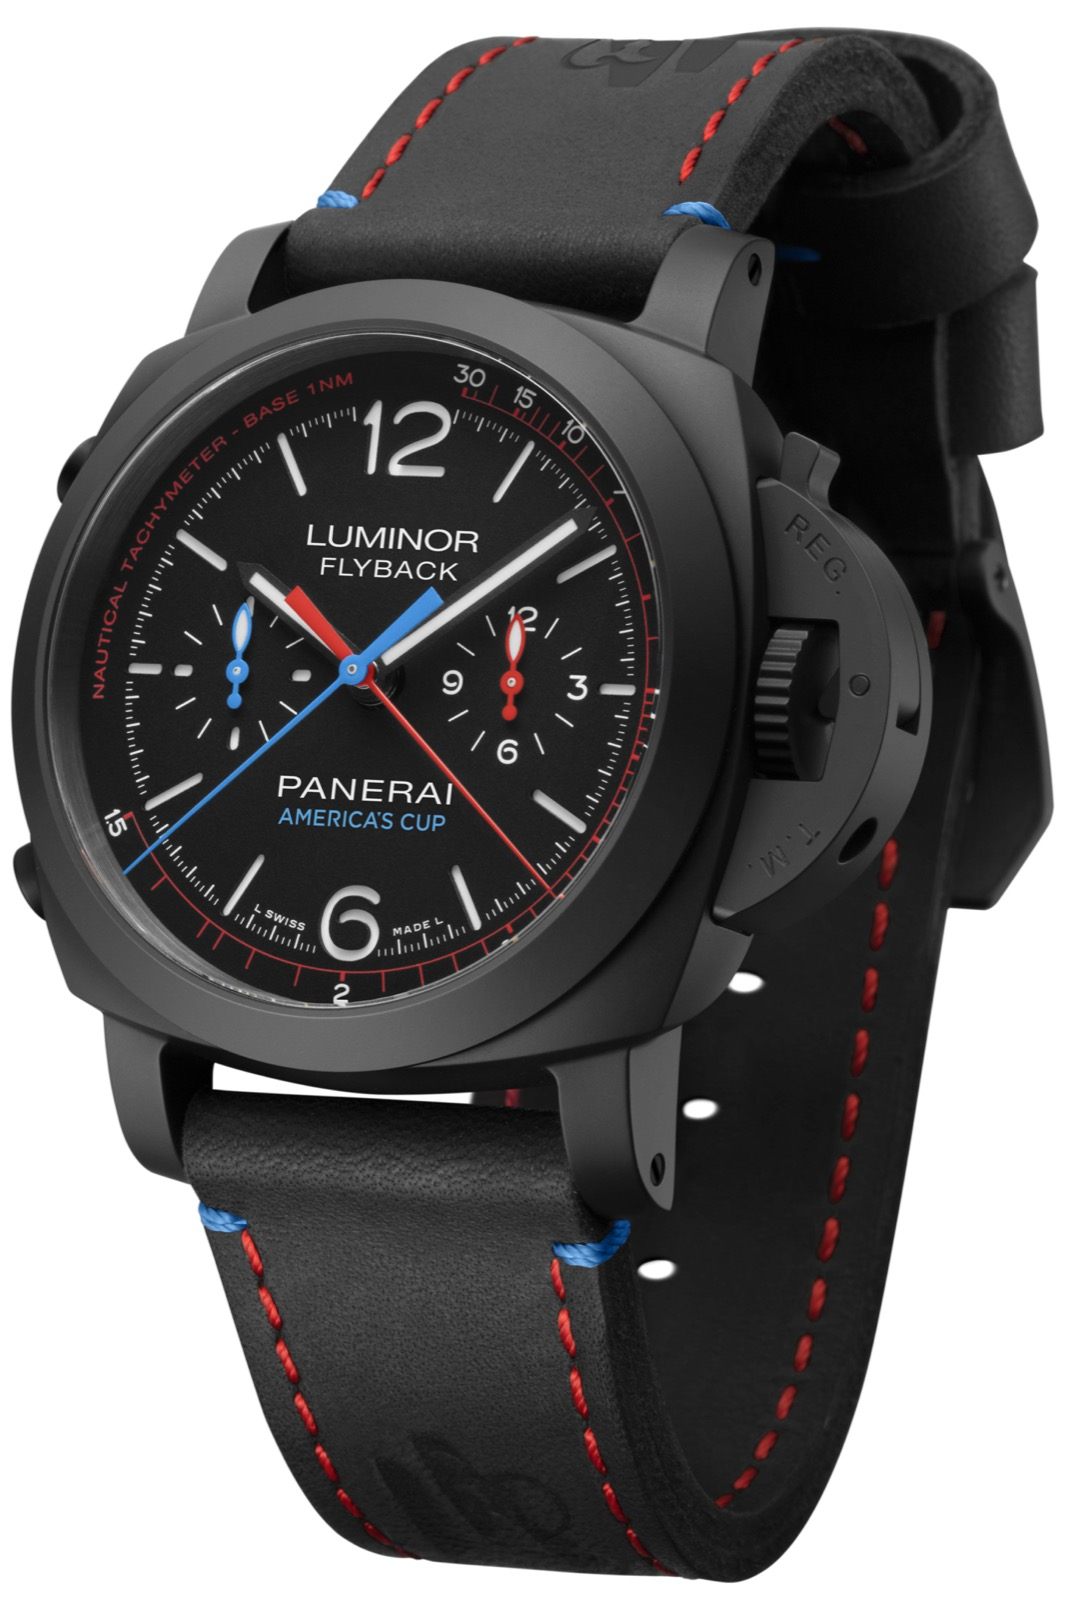 PANERAI LUMINOR 1950 ORACLE TEAM USA 3 DAYS CHRONO FLYBACK CERAMICA (PAM725) – 44mm